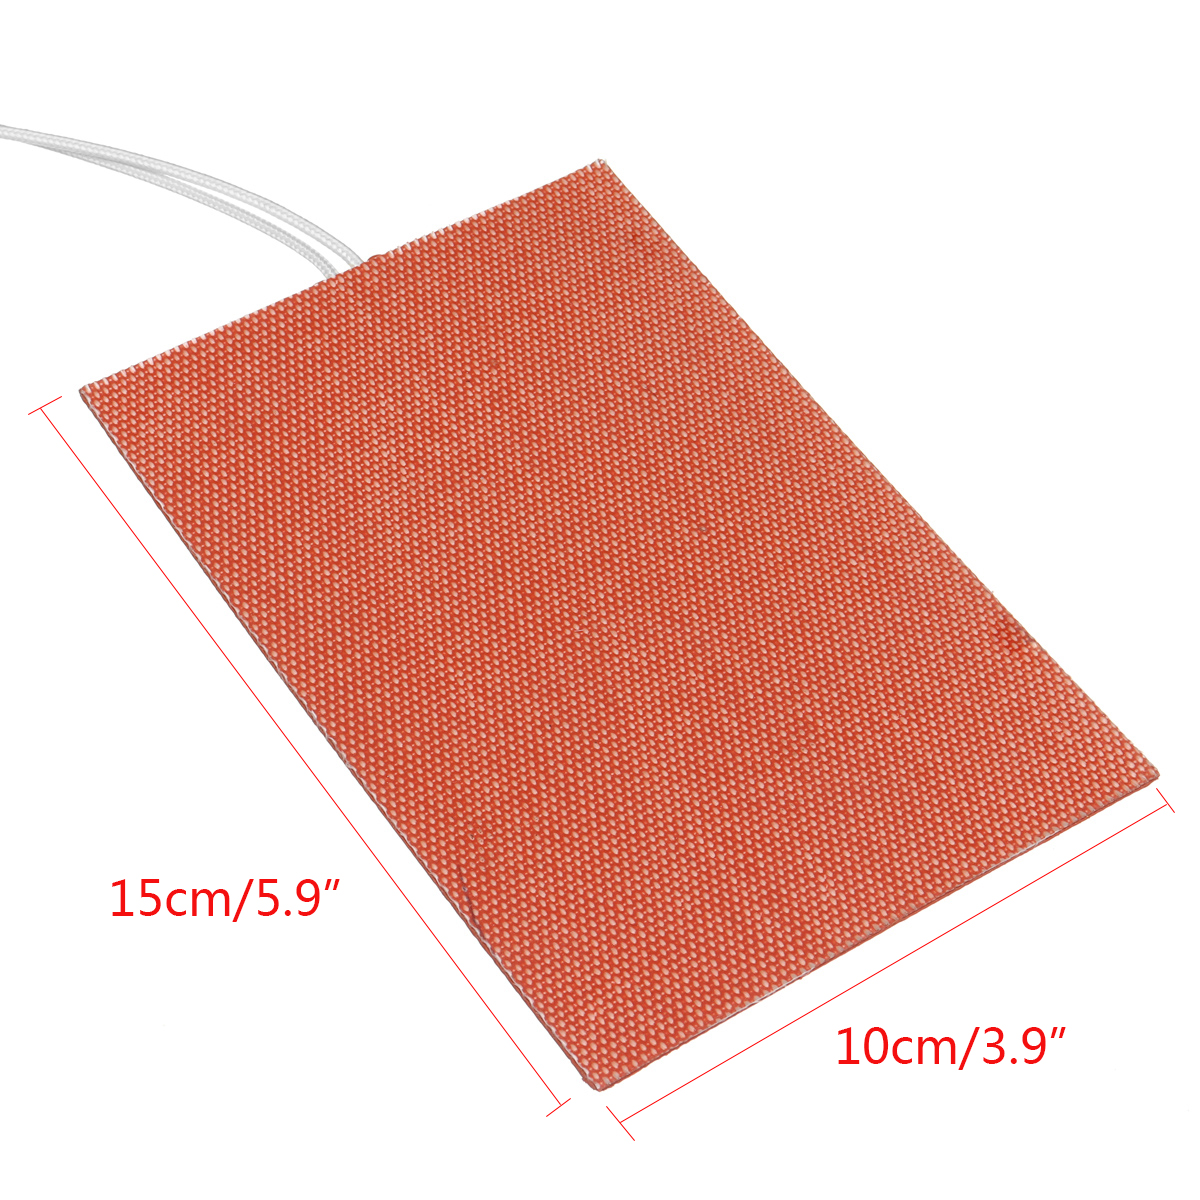 300W 240V 10*15cm Silicone Heated Bed Heating Pad w/ Adhesive Backing for 3D Printer Hot Bed